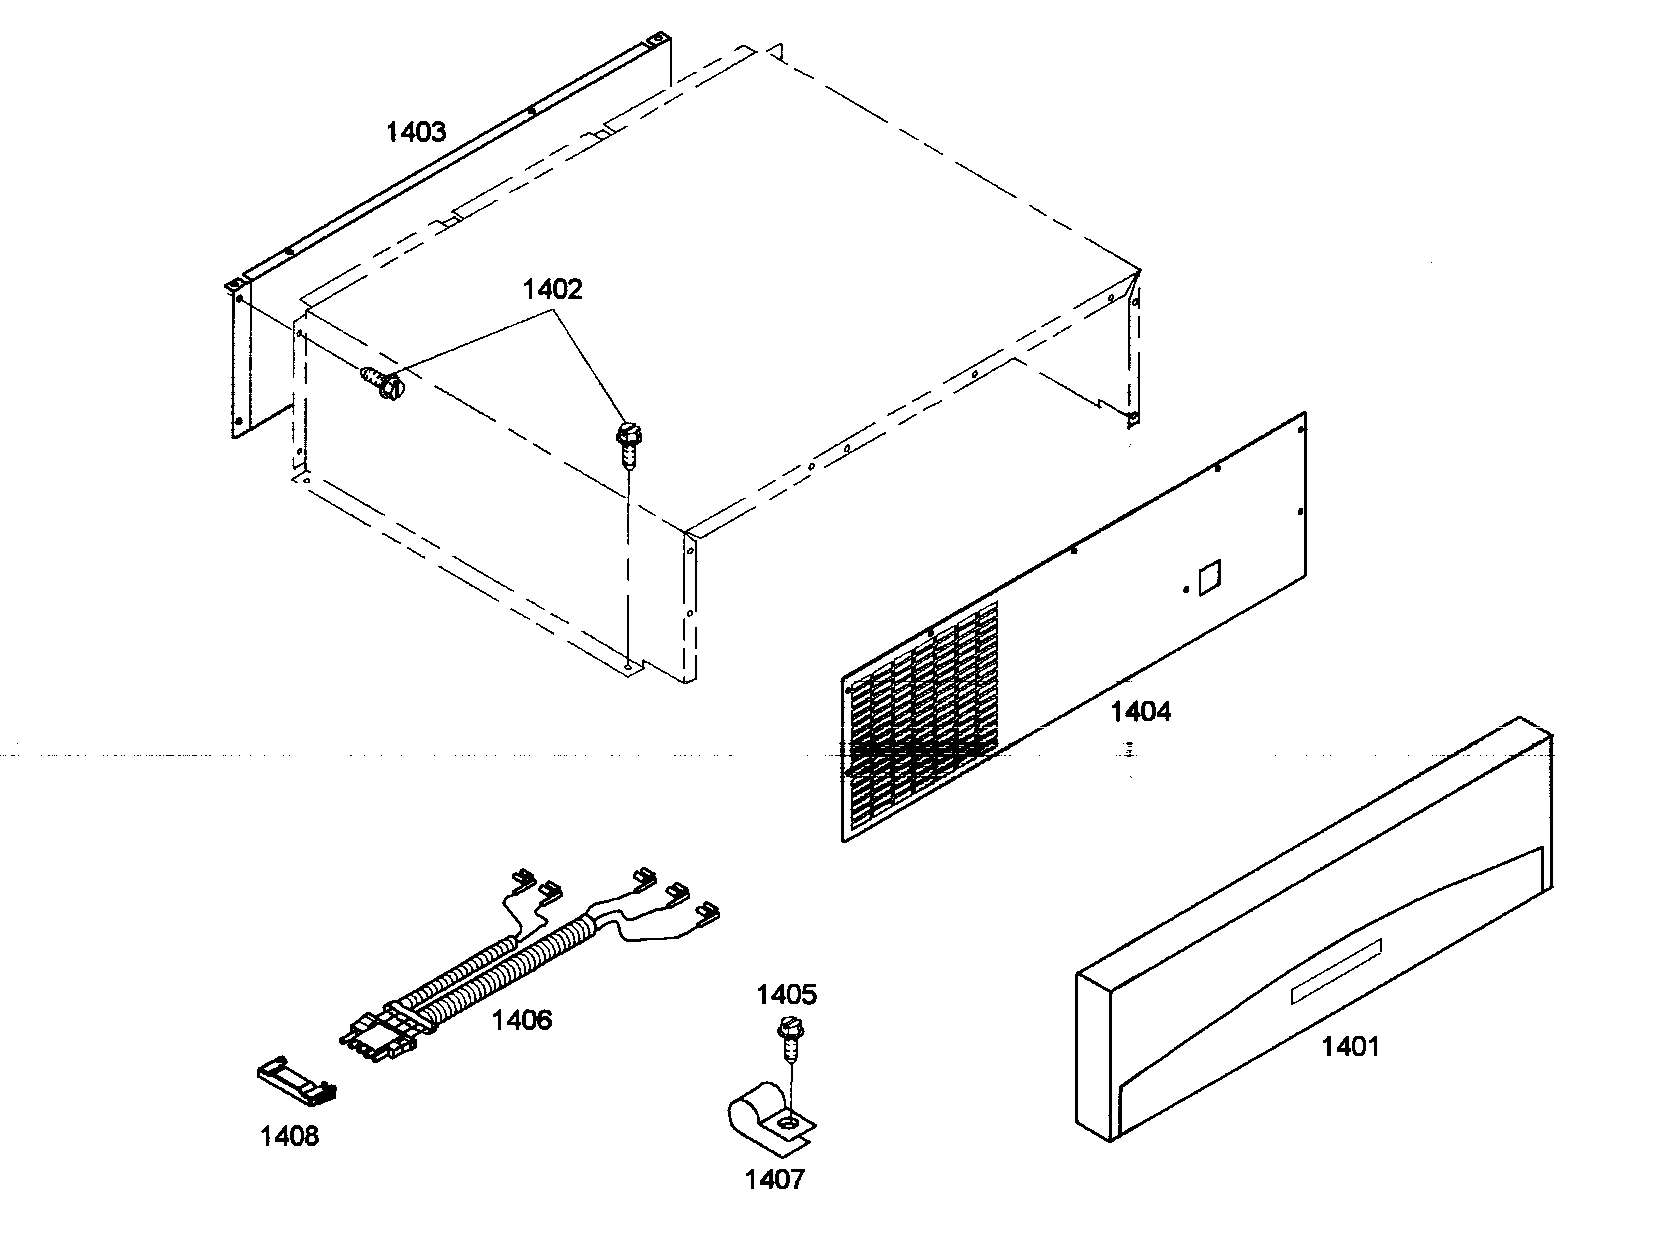 Thermador KBUDT4265E/01 top grille diagram